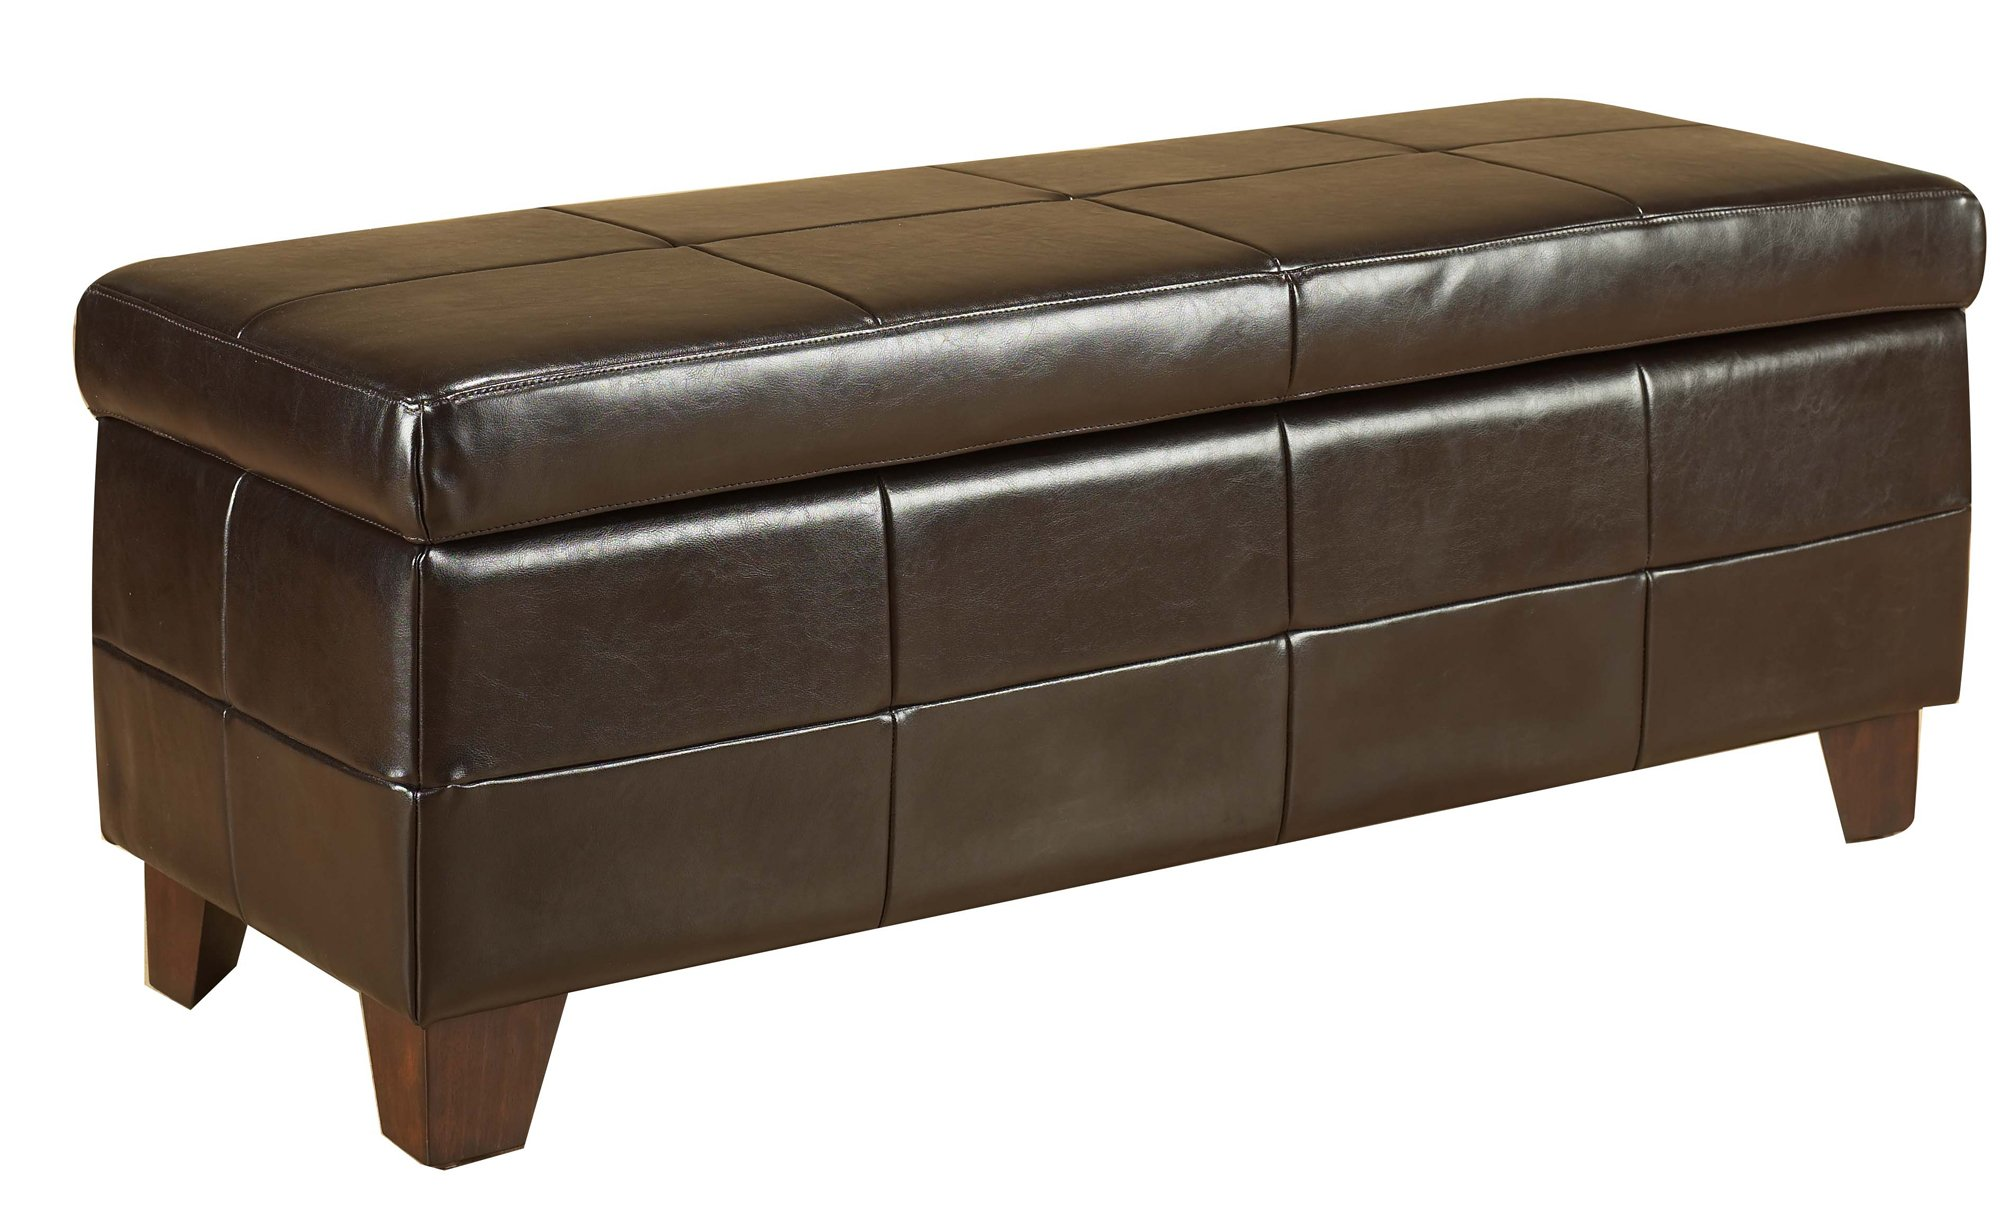 Modus Furniture Upholstered Milano Storage Bench Chocolate Leatherette